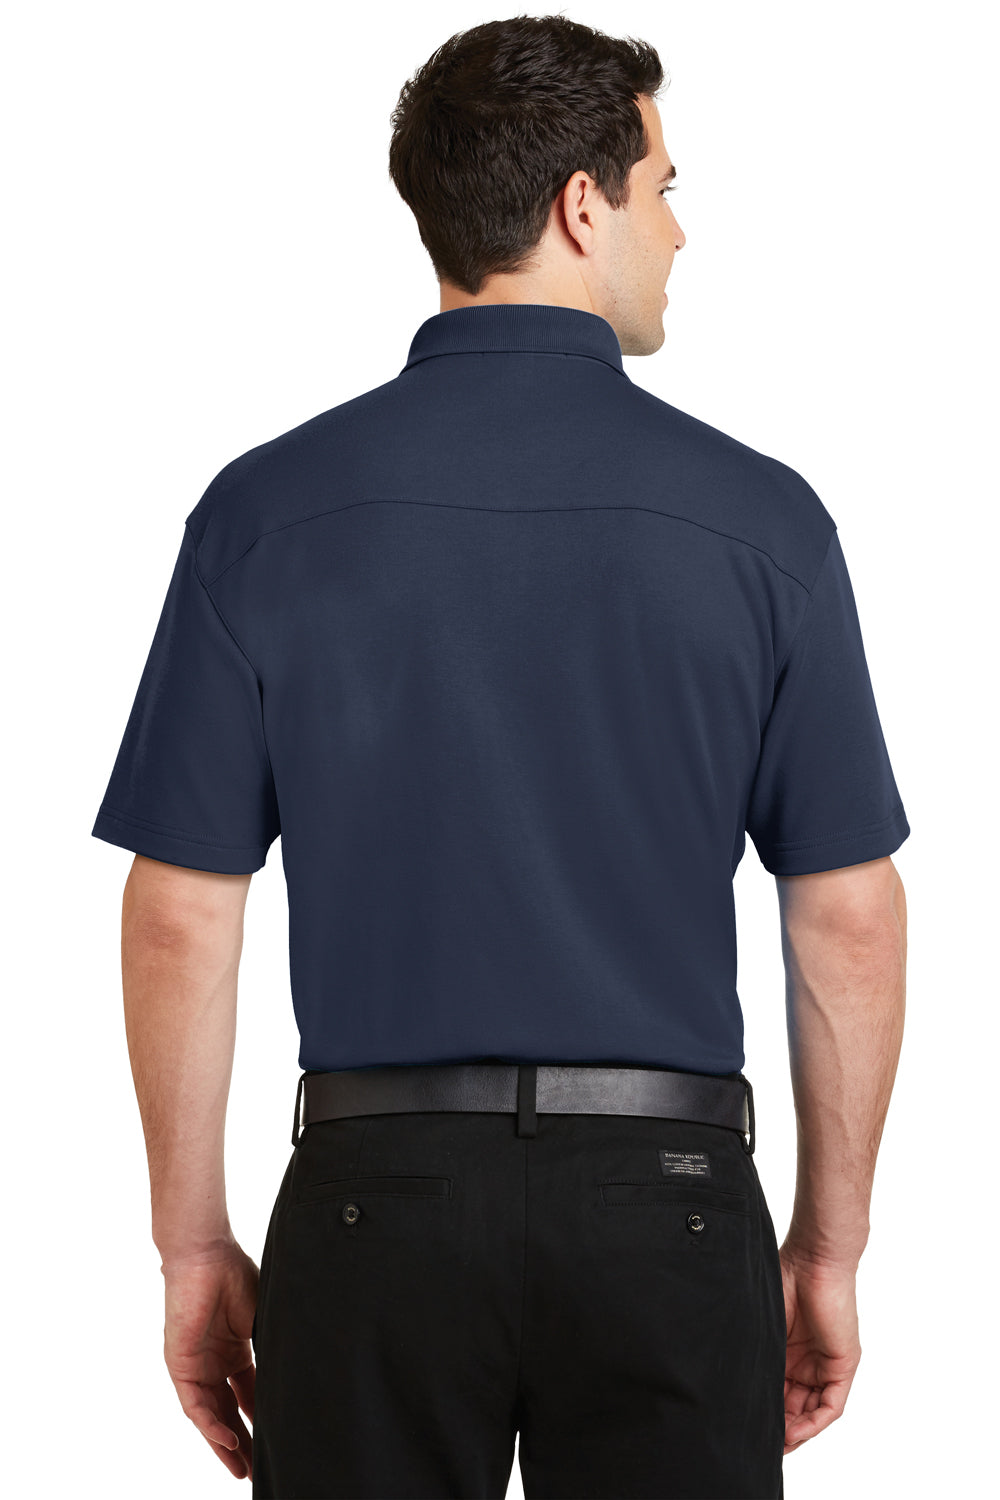 Port Authority K5200 Mens Silk Touch Performance Moisture Wicking Short Sleeve Polo Shirt Navy Blue Back